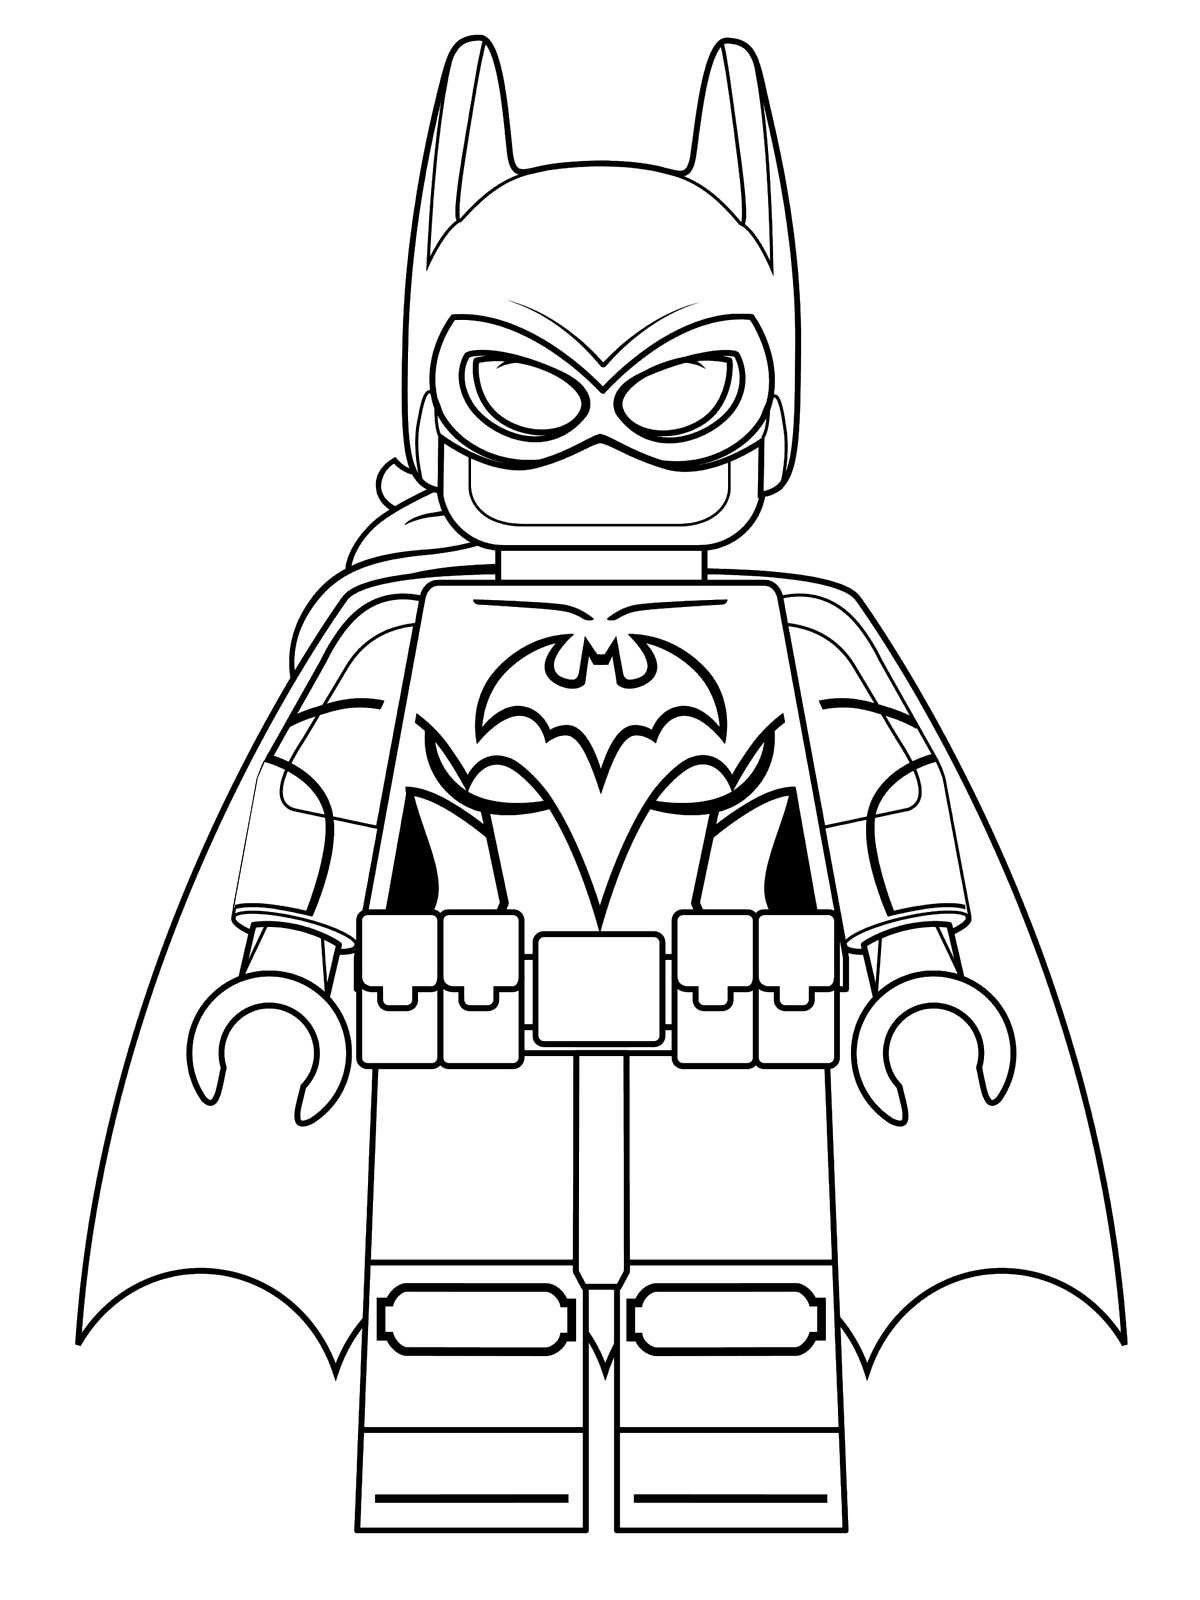 Batman Coloring Pages For Kids Coloring Pages Lego Batman Coloring Best For Kids And Superhero Coloring Superhero Coloring Pages Lego Coloring Pages